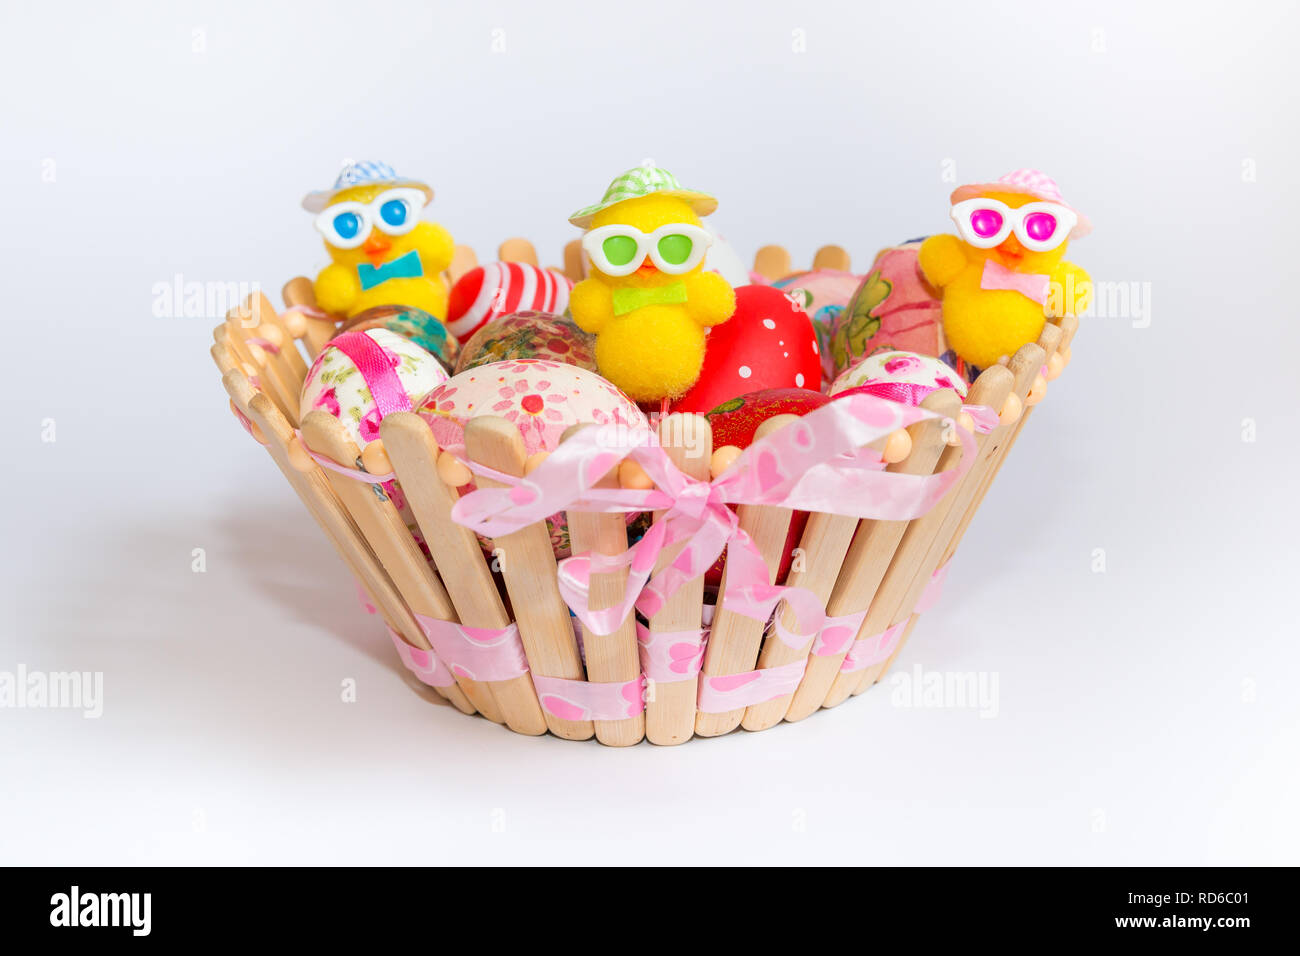 Easter decoration with colorful eggs and funny chicks in wooden basket isolated on white background. Easter holiday concept. Stock Photo